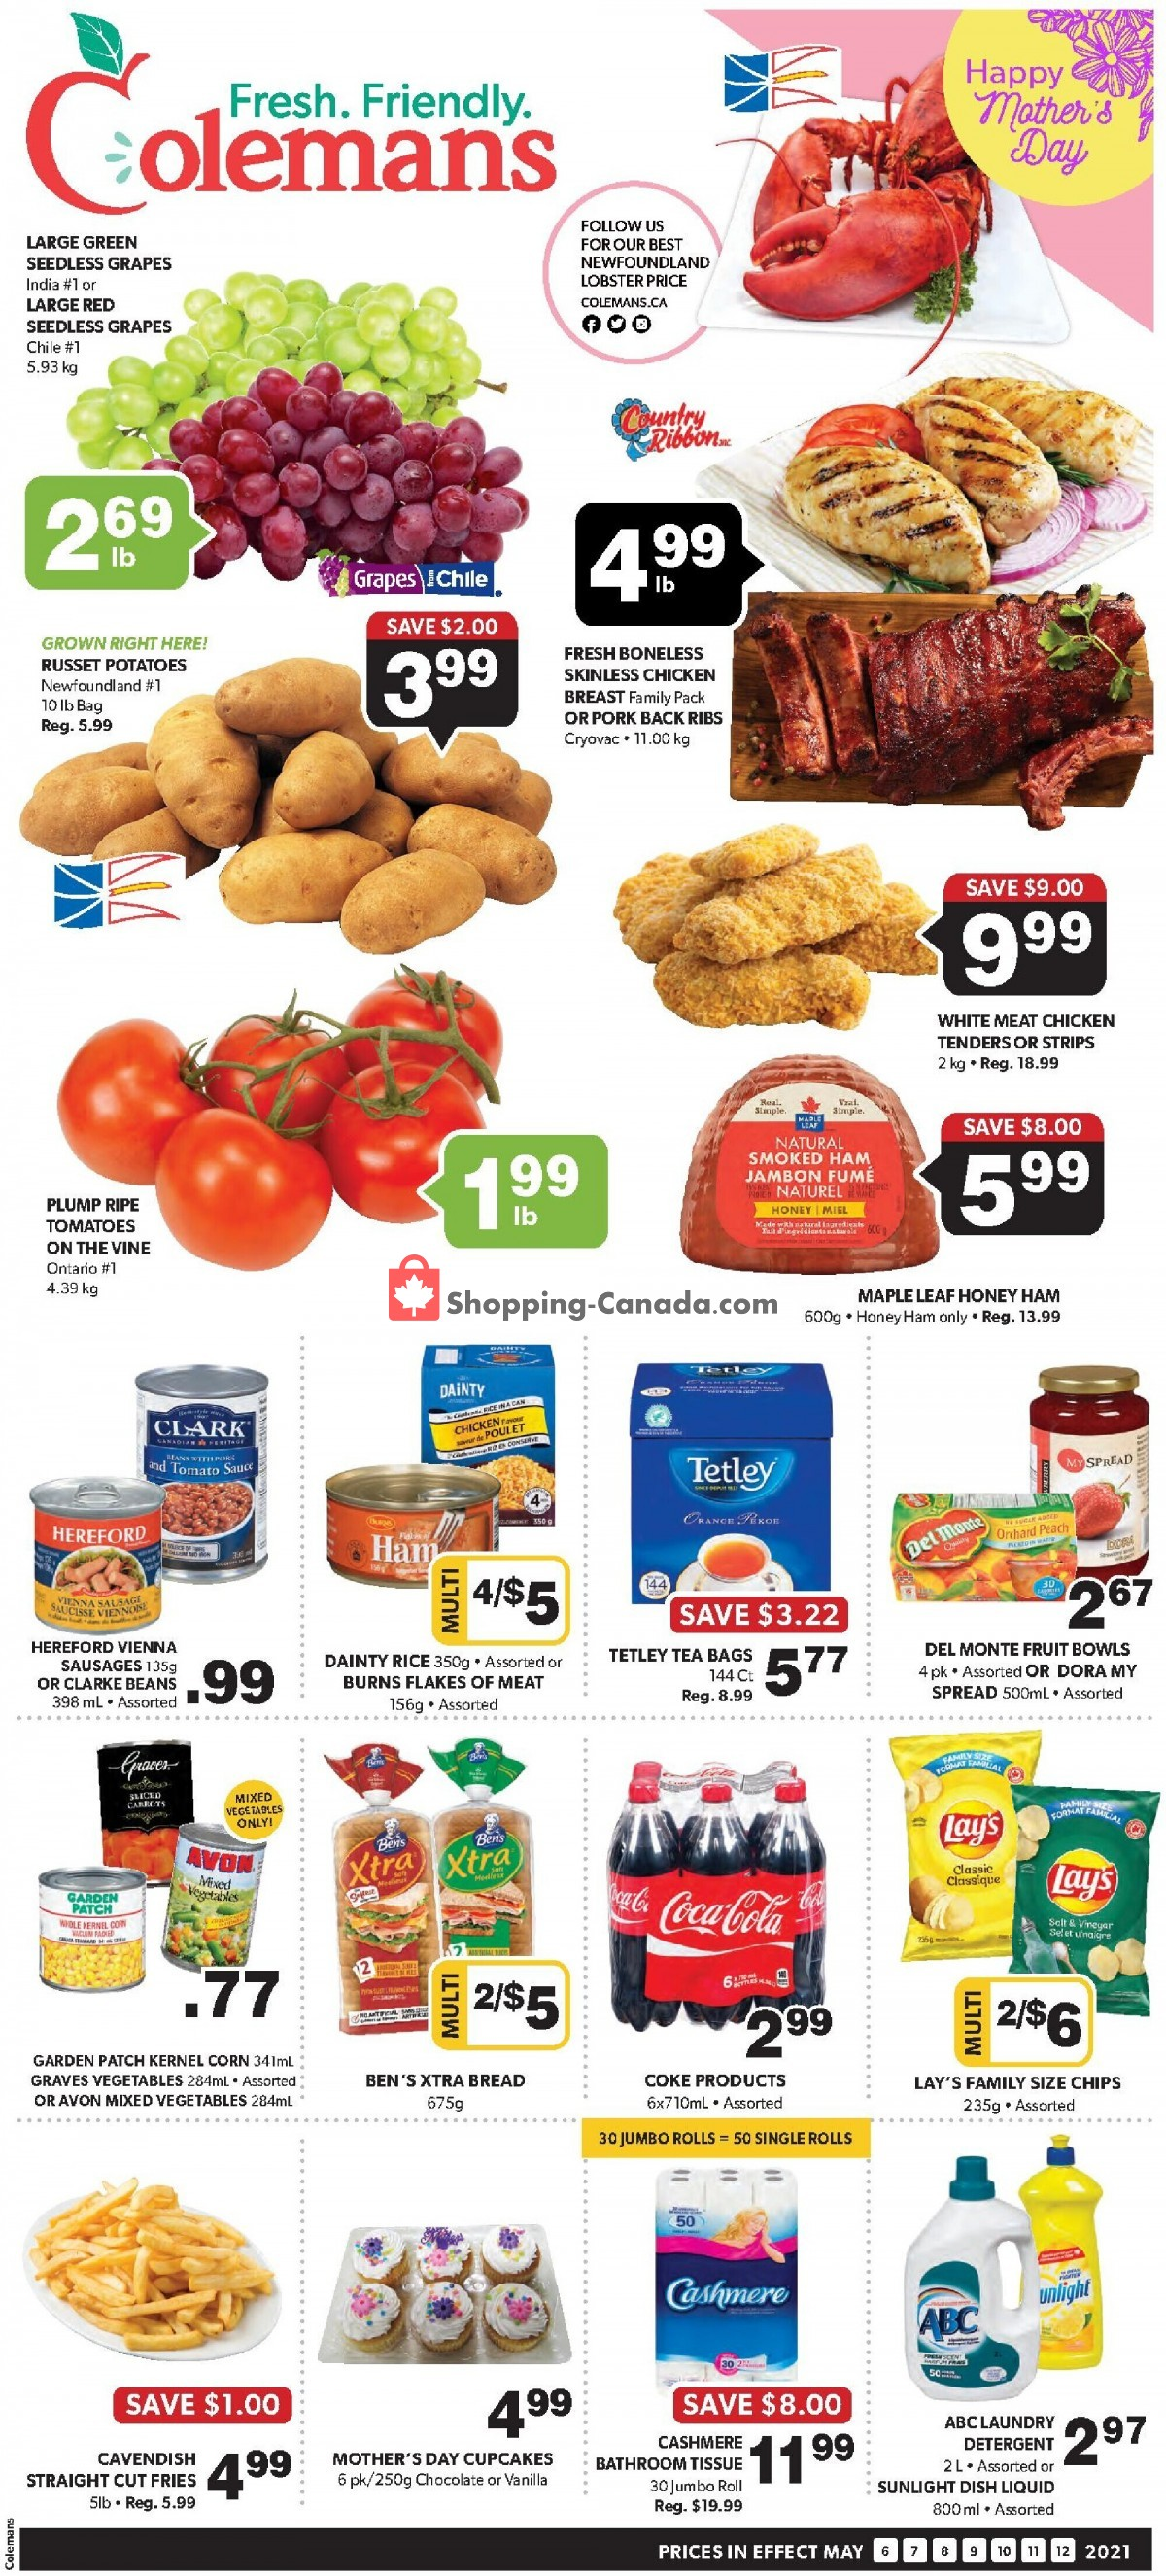 Flyer Coleman's Canada - from Thursday May 6, 2021 to Wednesday May 12, 2021